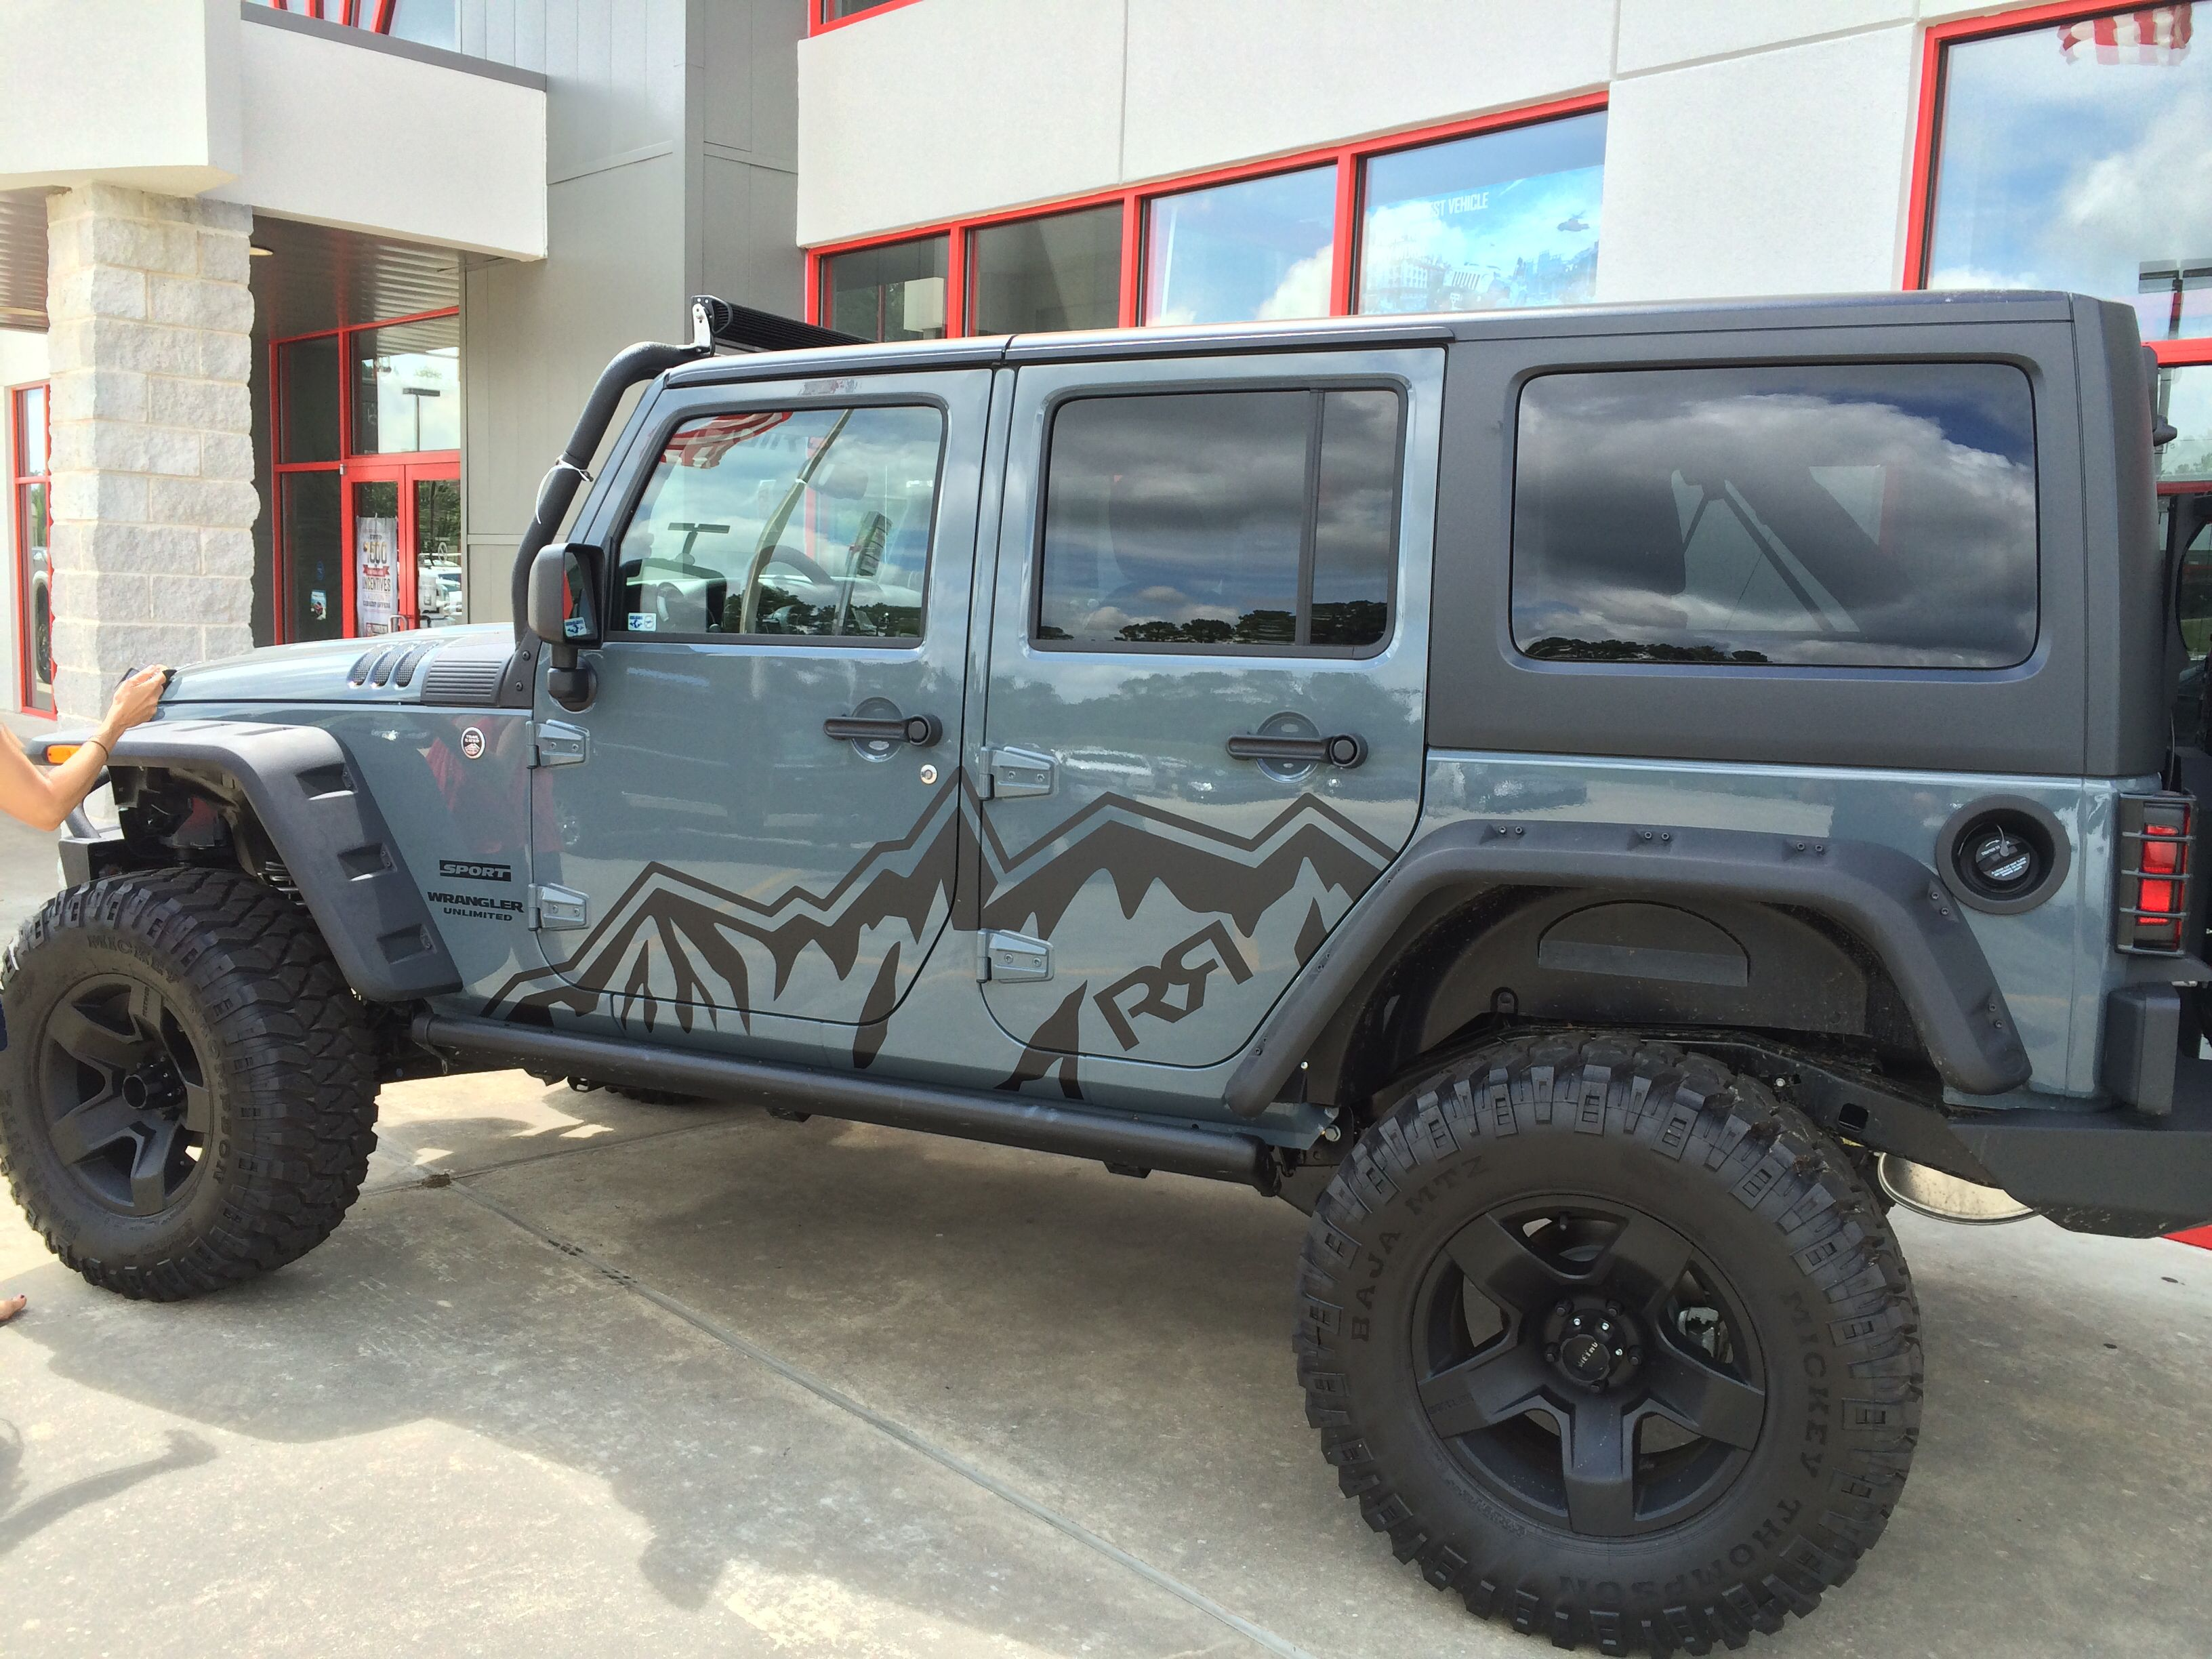 recon builds its news rubicon ever jeep sale door debuts doors wrangler anniversary most capable h unlimited edition